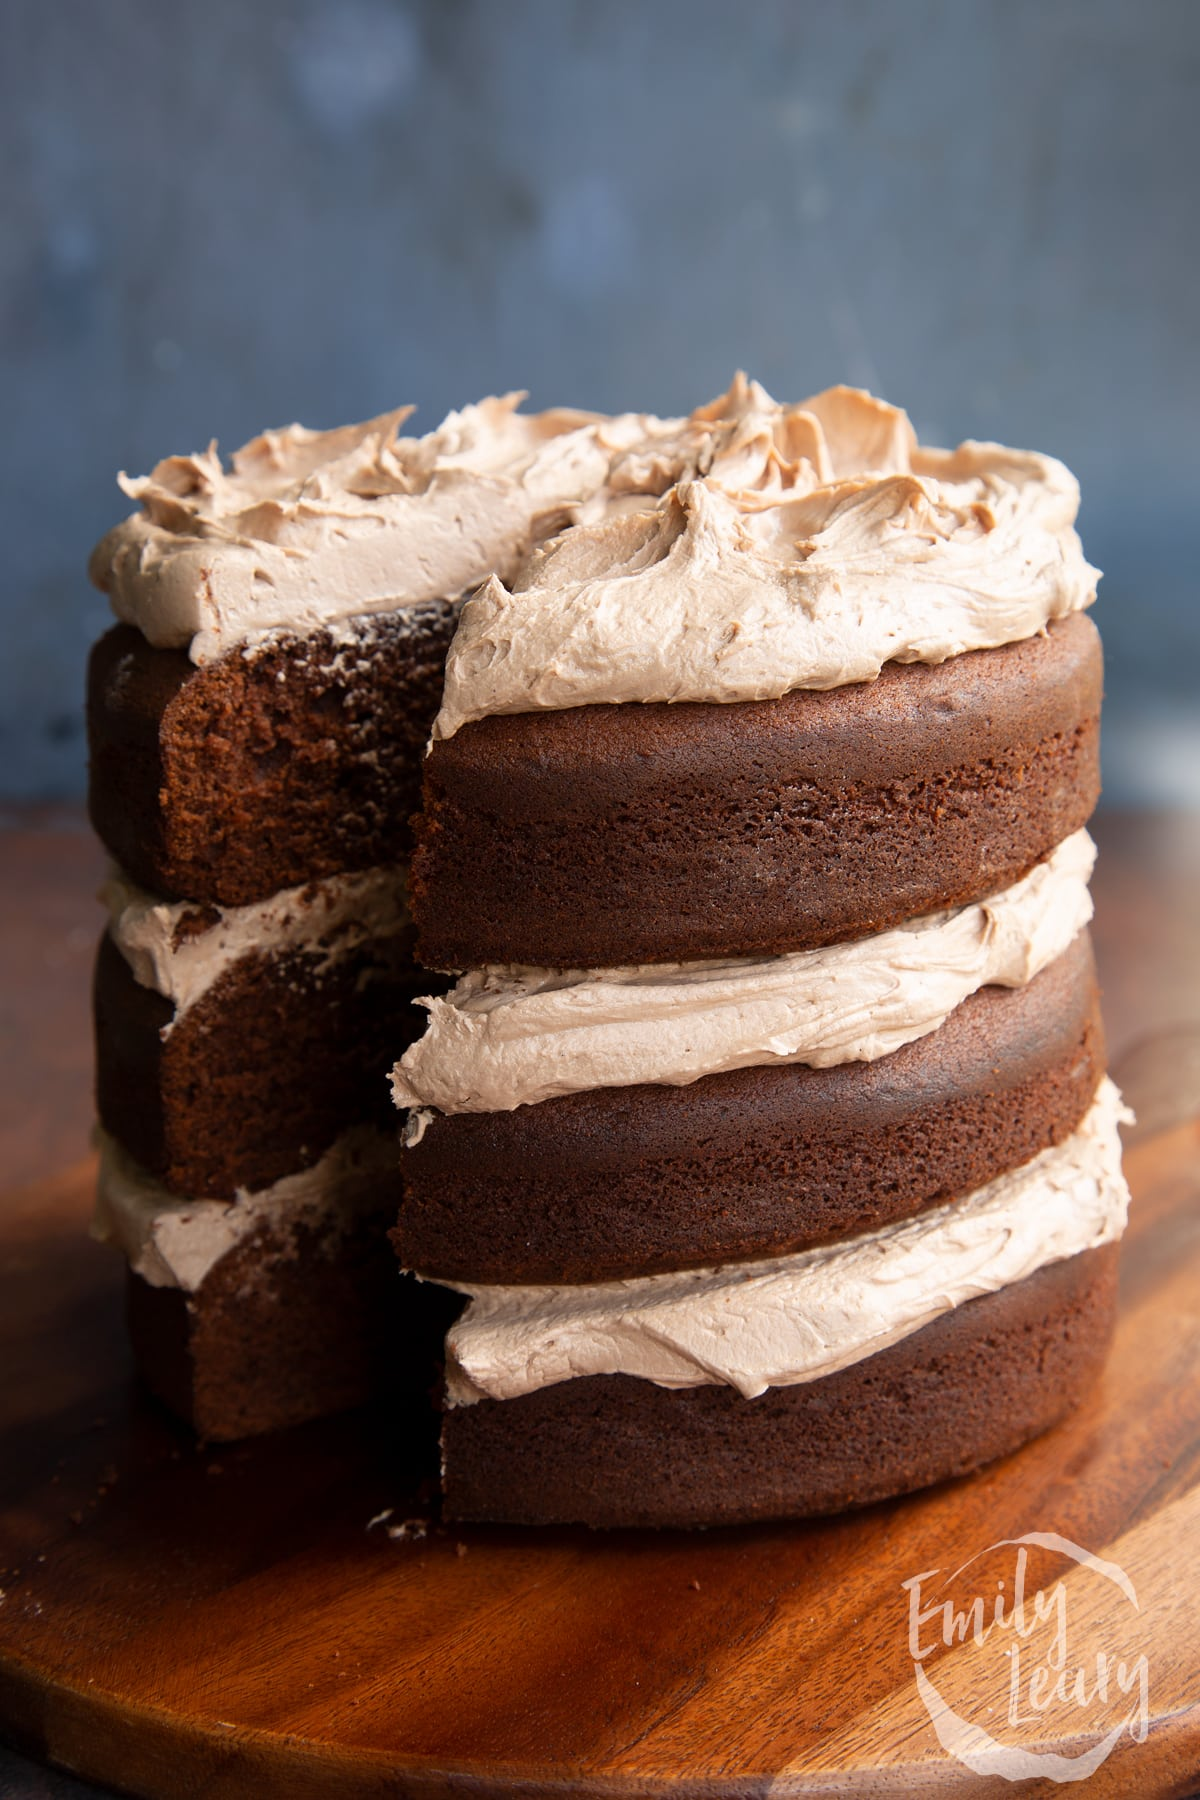 Three tier chocolate Baileys cake, sandwiched and topped with Baileys buttercream frosting. A slice has been cut away.